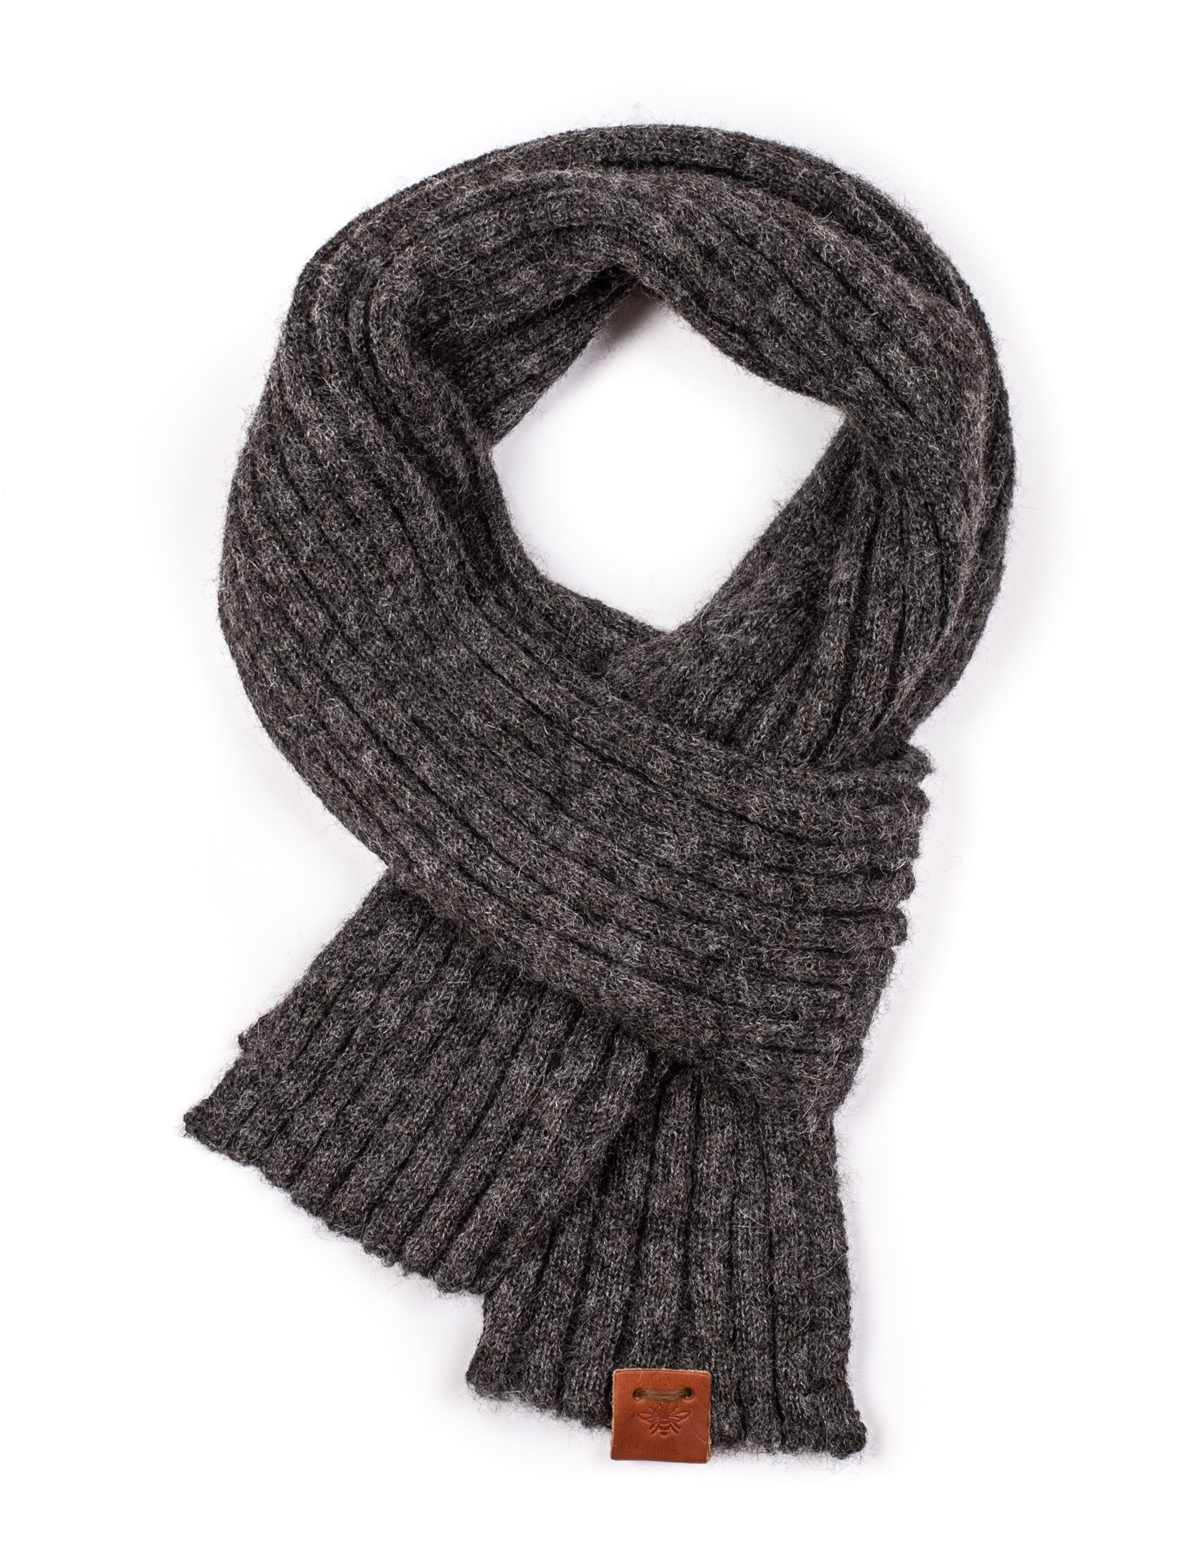 Ally Bee Alpaca-scarf-charcoal-wide-rib-1